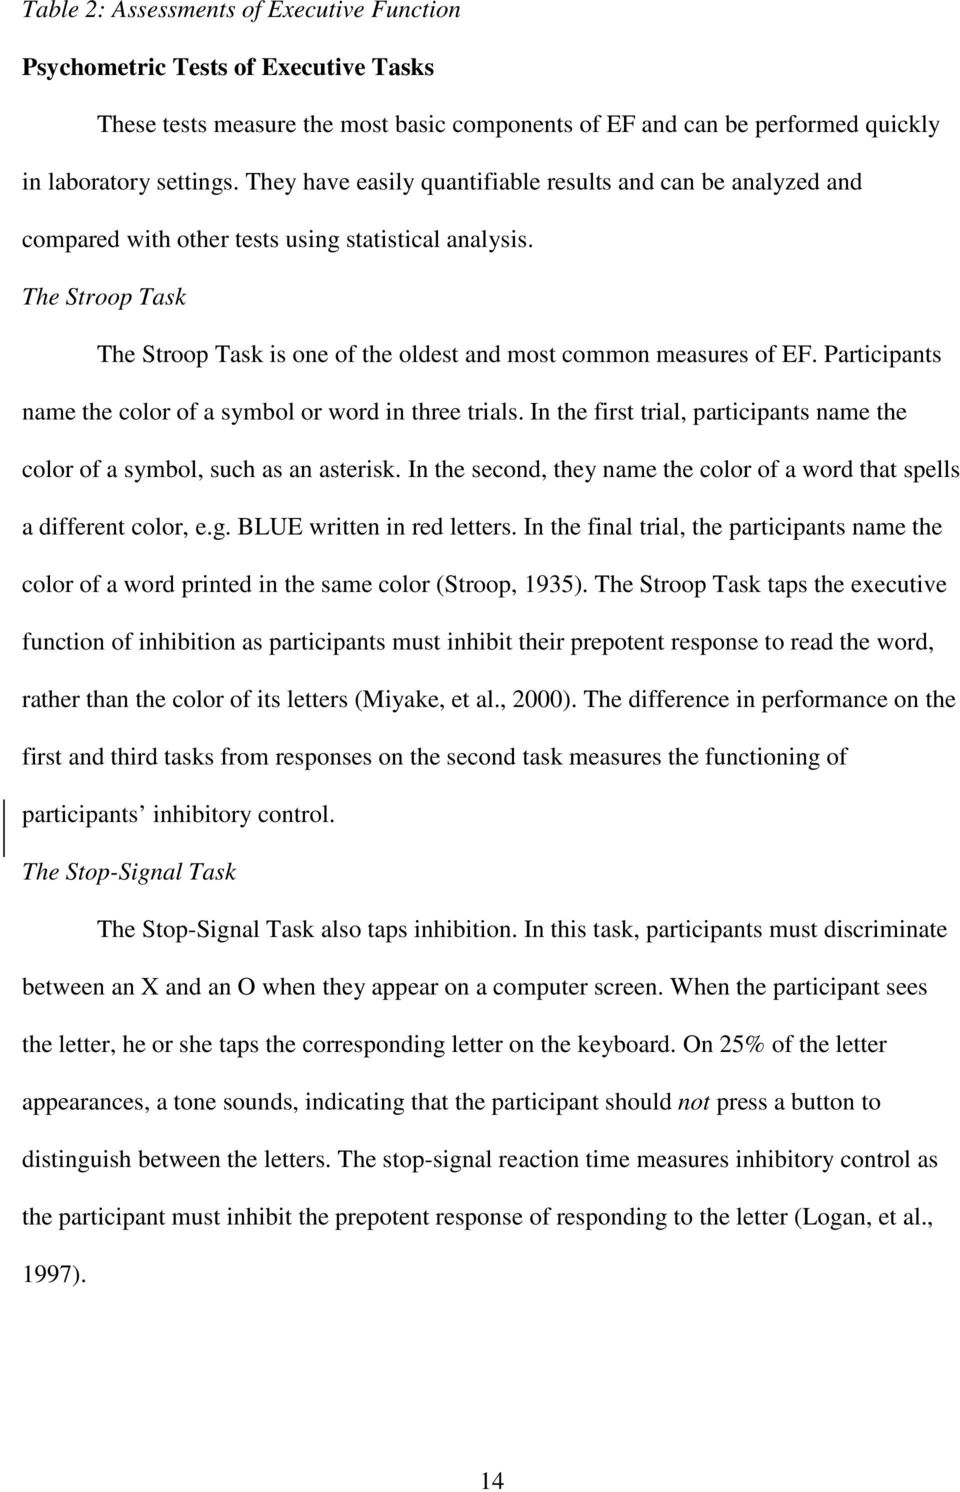 Participants name the color of a symbol or word in three trials. In the first trial, participants name the color of a symbol, such as an asterisk.